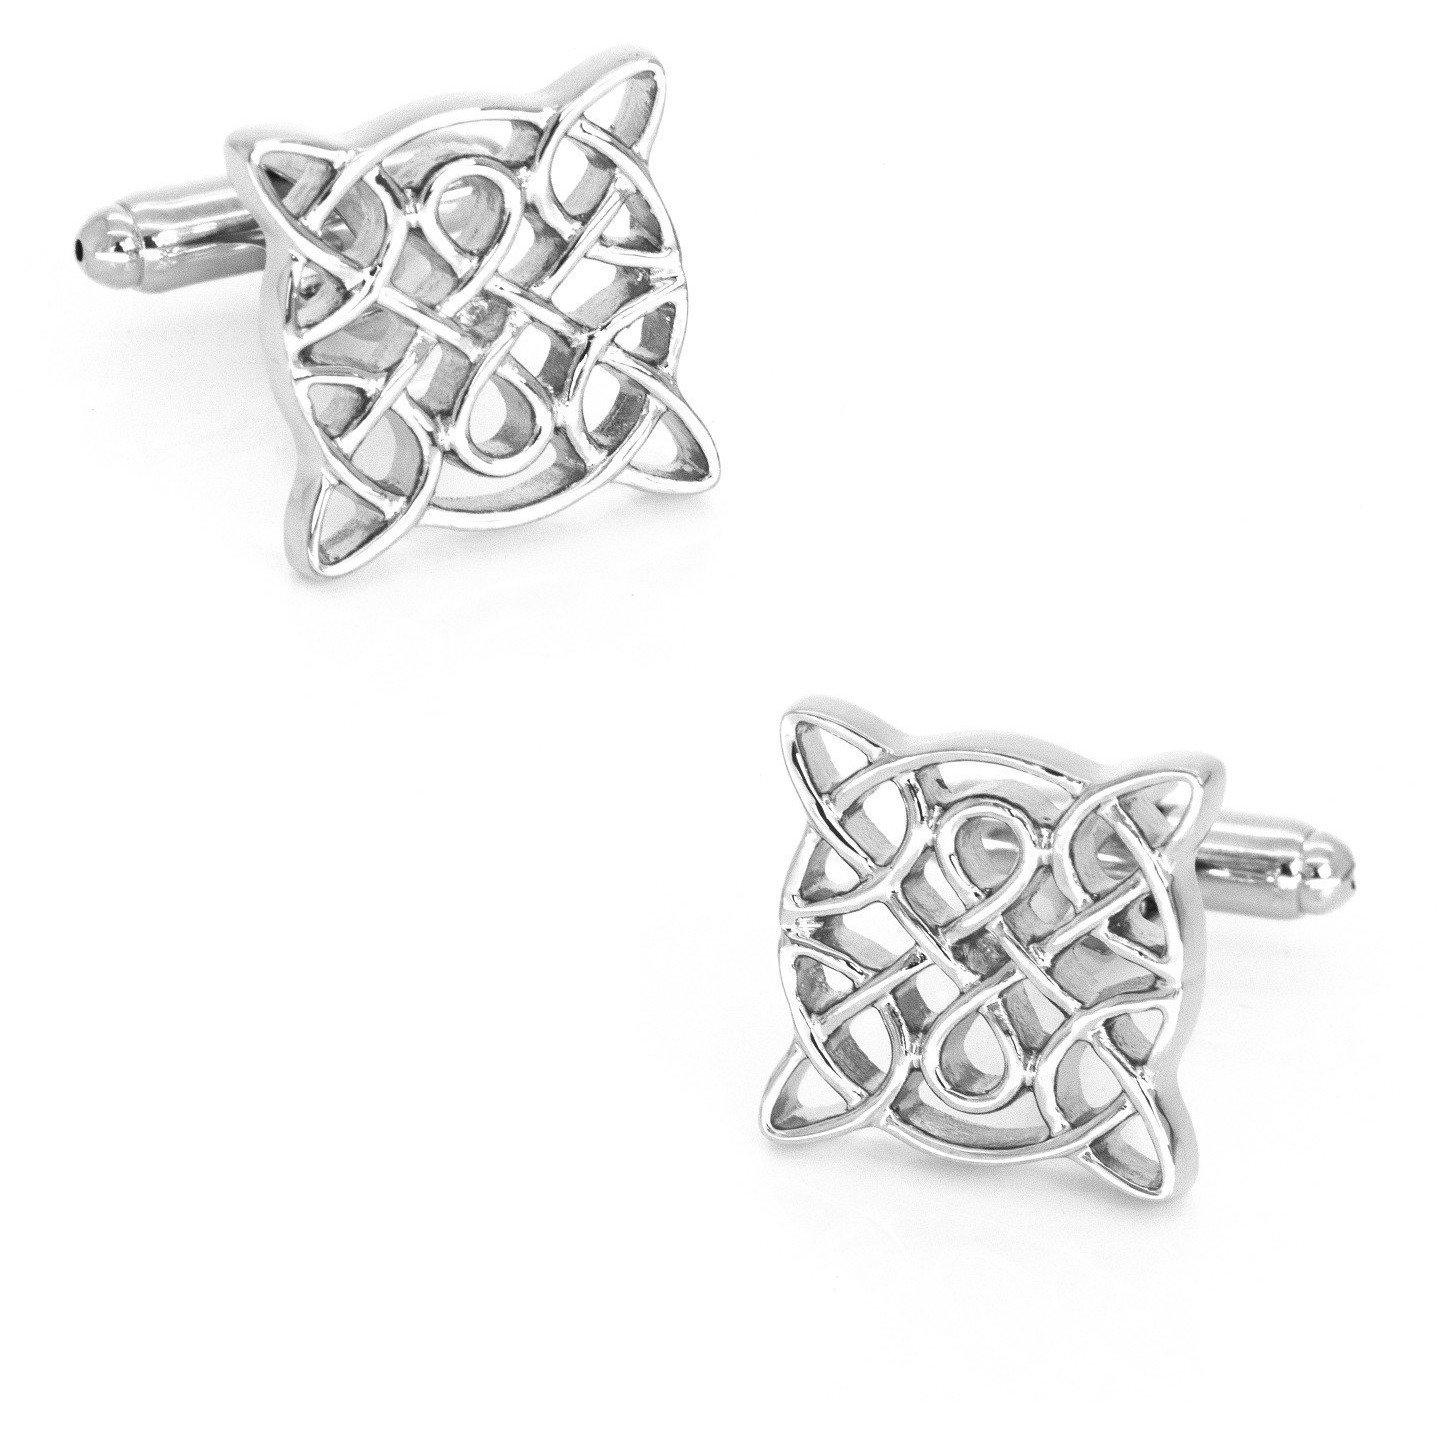 Silver Celtic Square Knot Cufflinks Novelty Cufflinks Clinks Australia Silver Celtic Square Knot Cufflinks